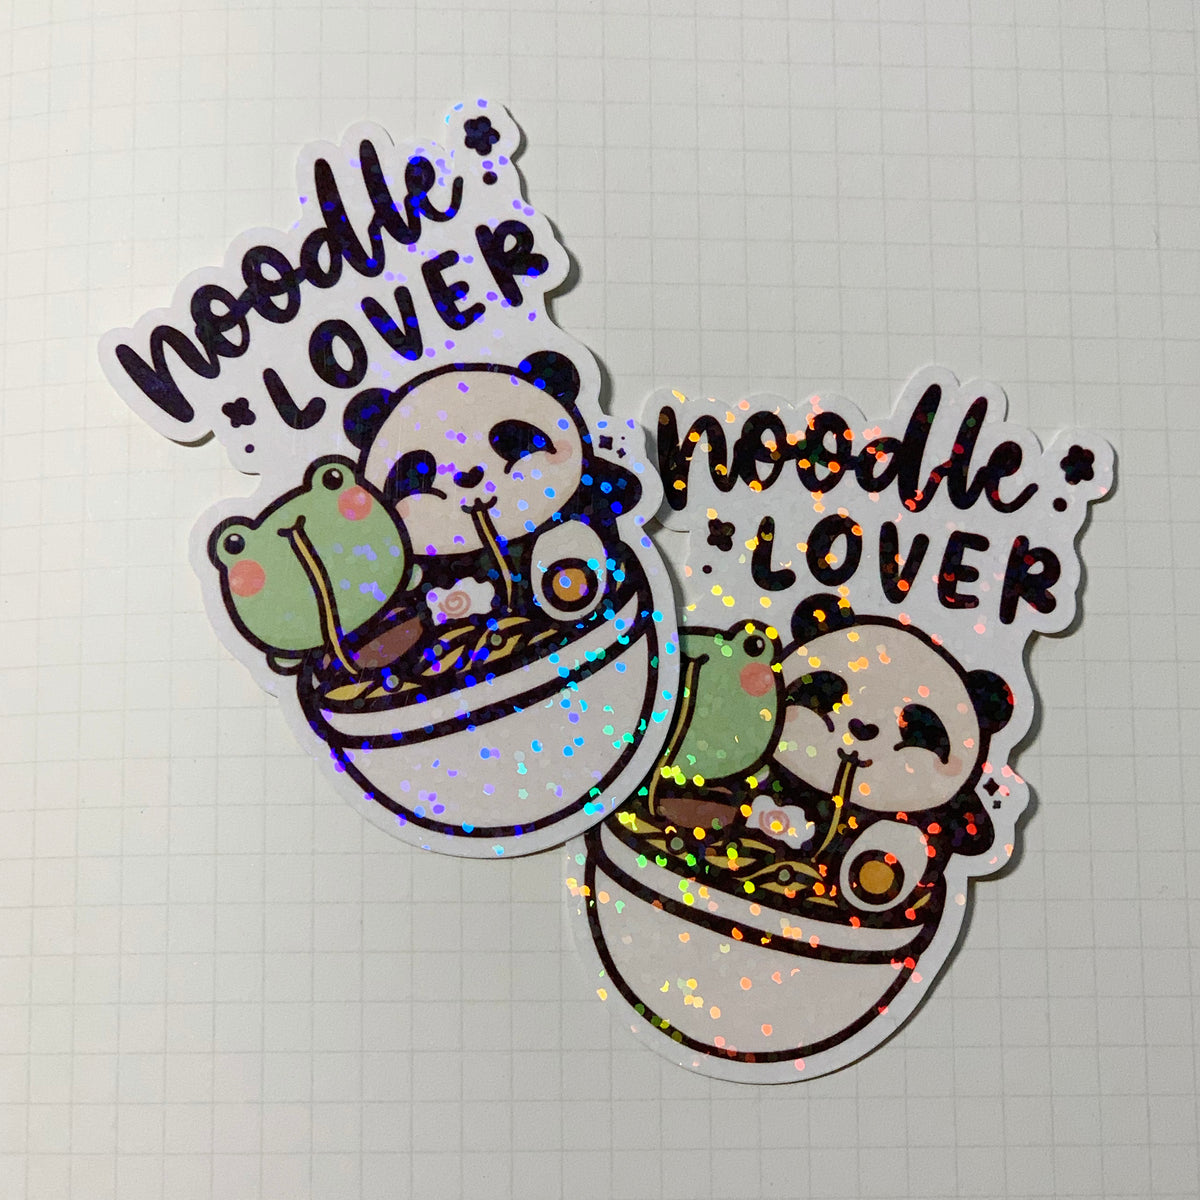 Noodle Lover Sticker Flake